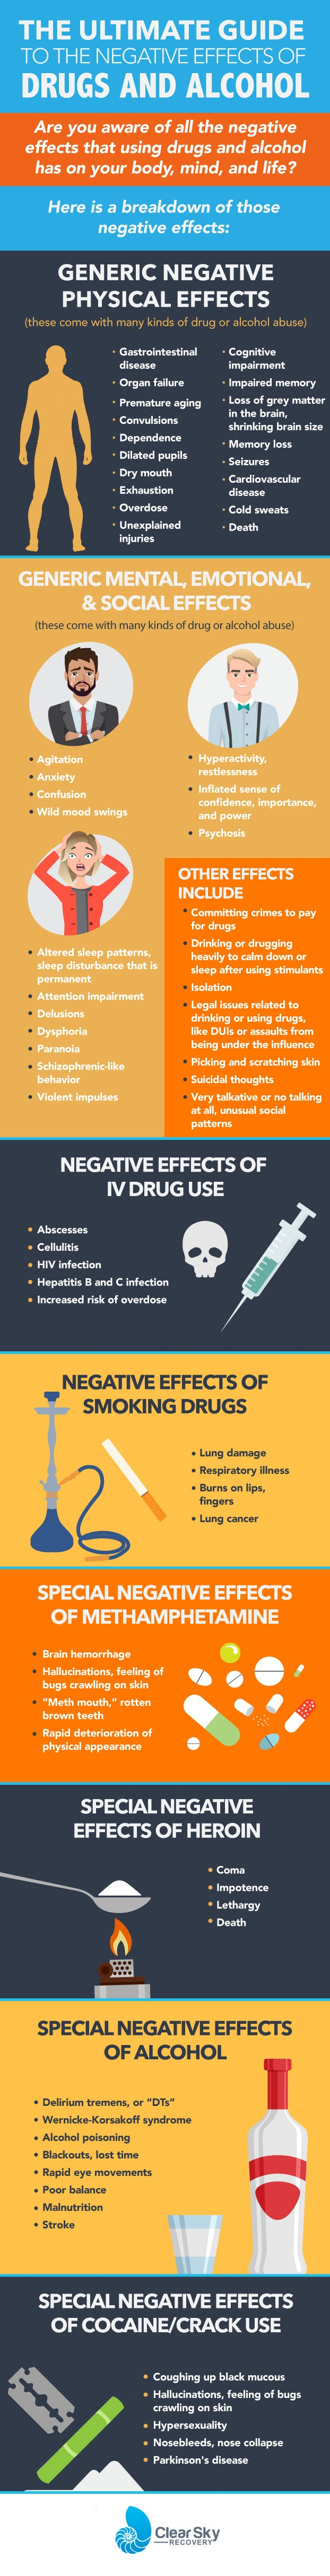 The Ultimate Guide to the Negative Effects of Drugs and Alcohol